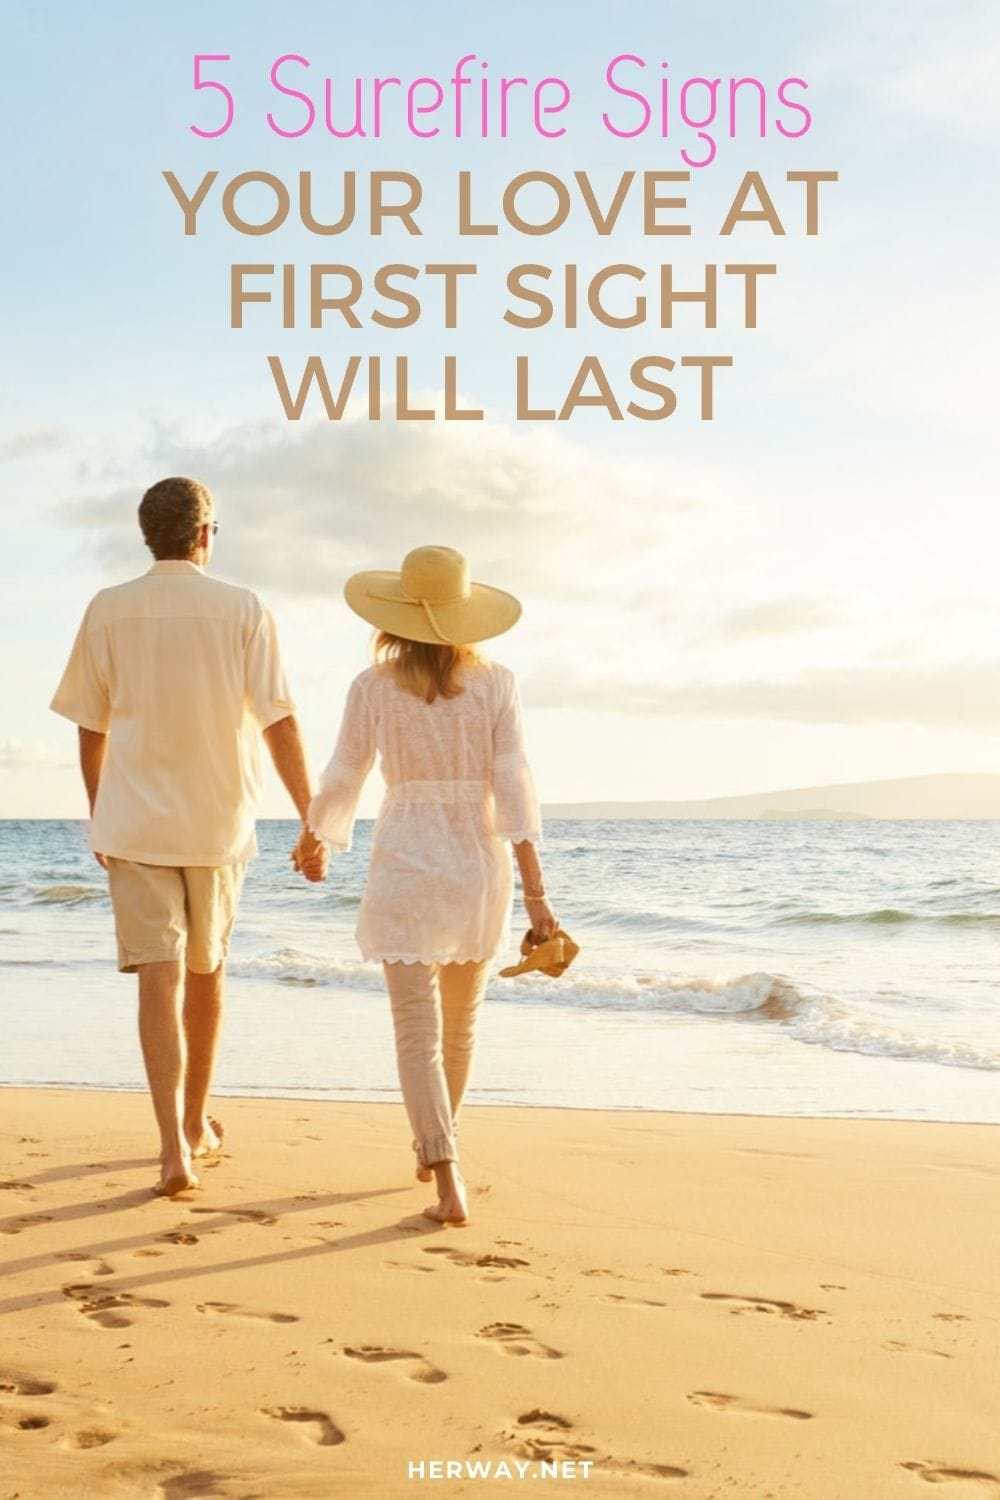 5 Surefire Signs Your Love At First Sight Will Last